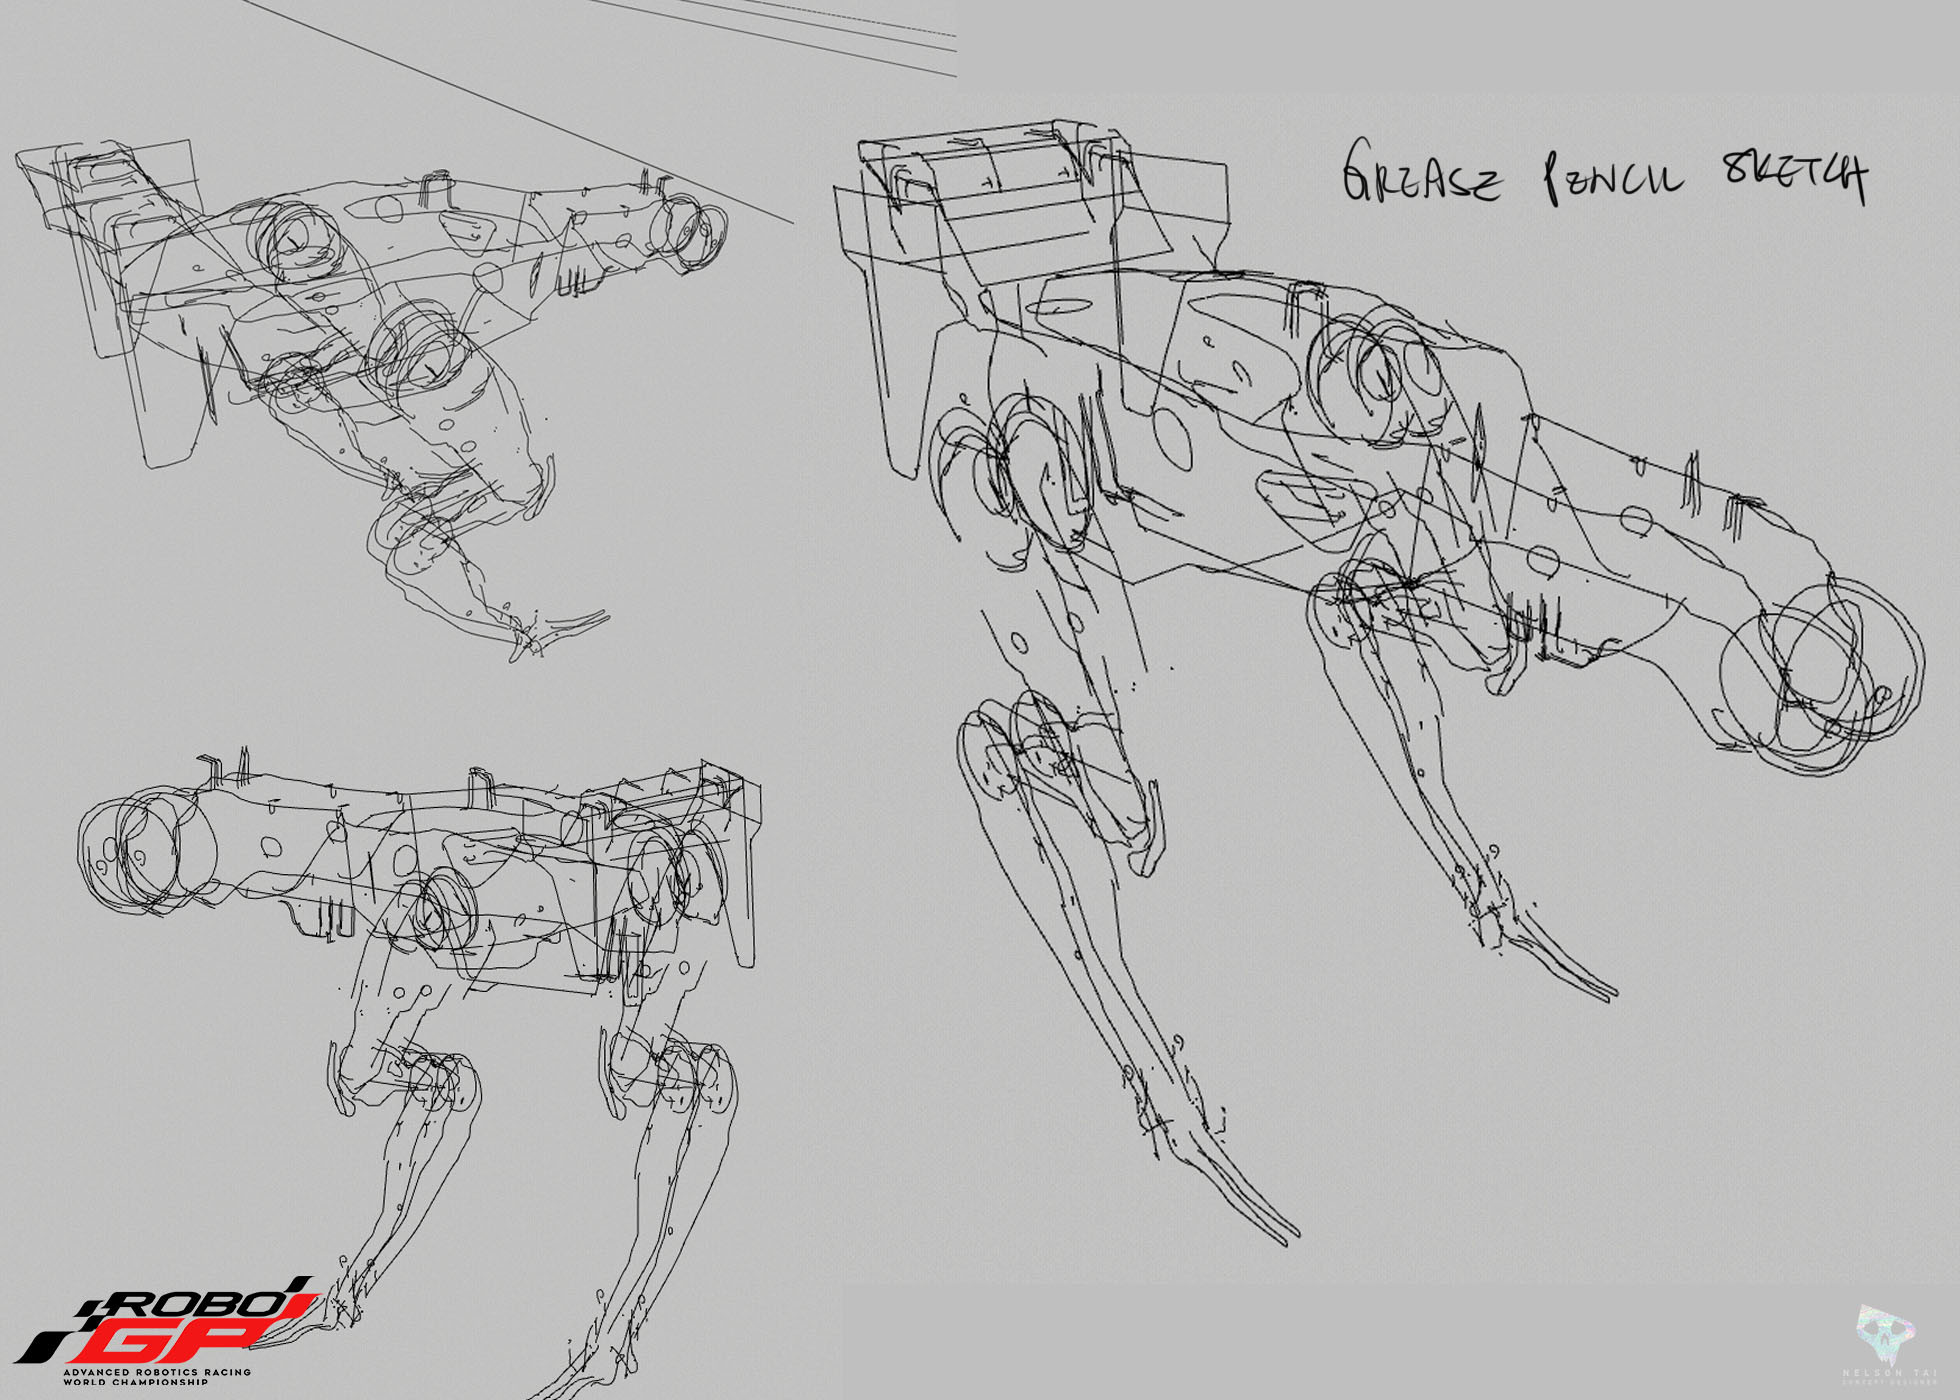 Initial grease pencil sketches to work out the logic and proportions of the design! Super fun!